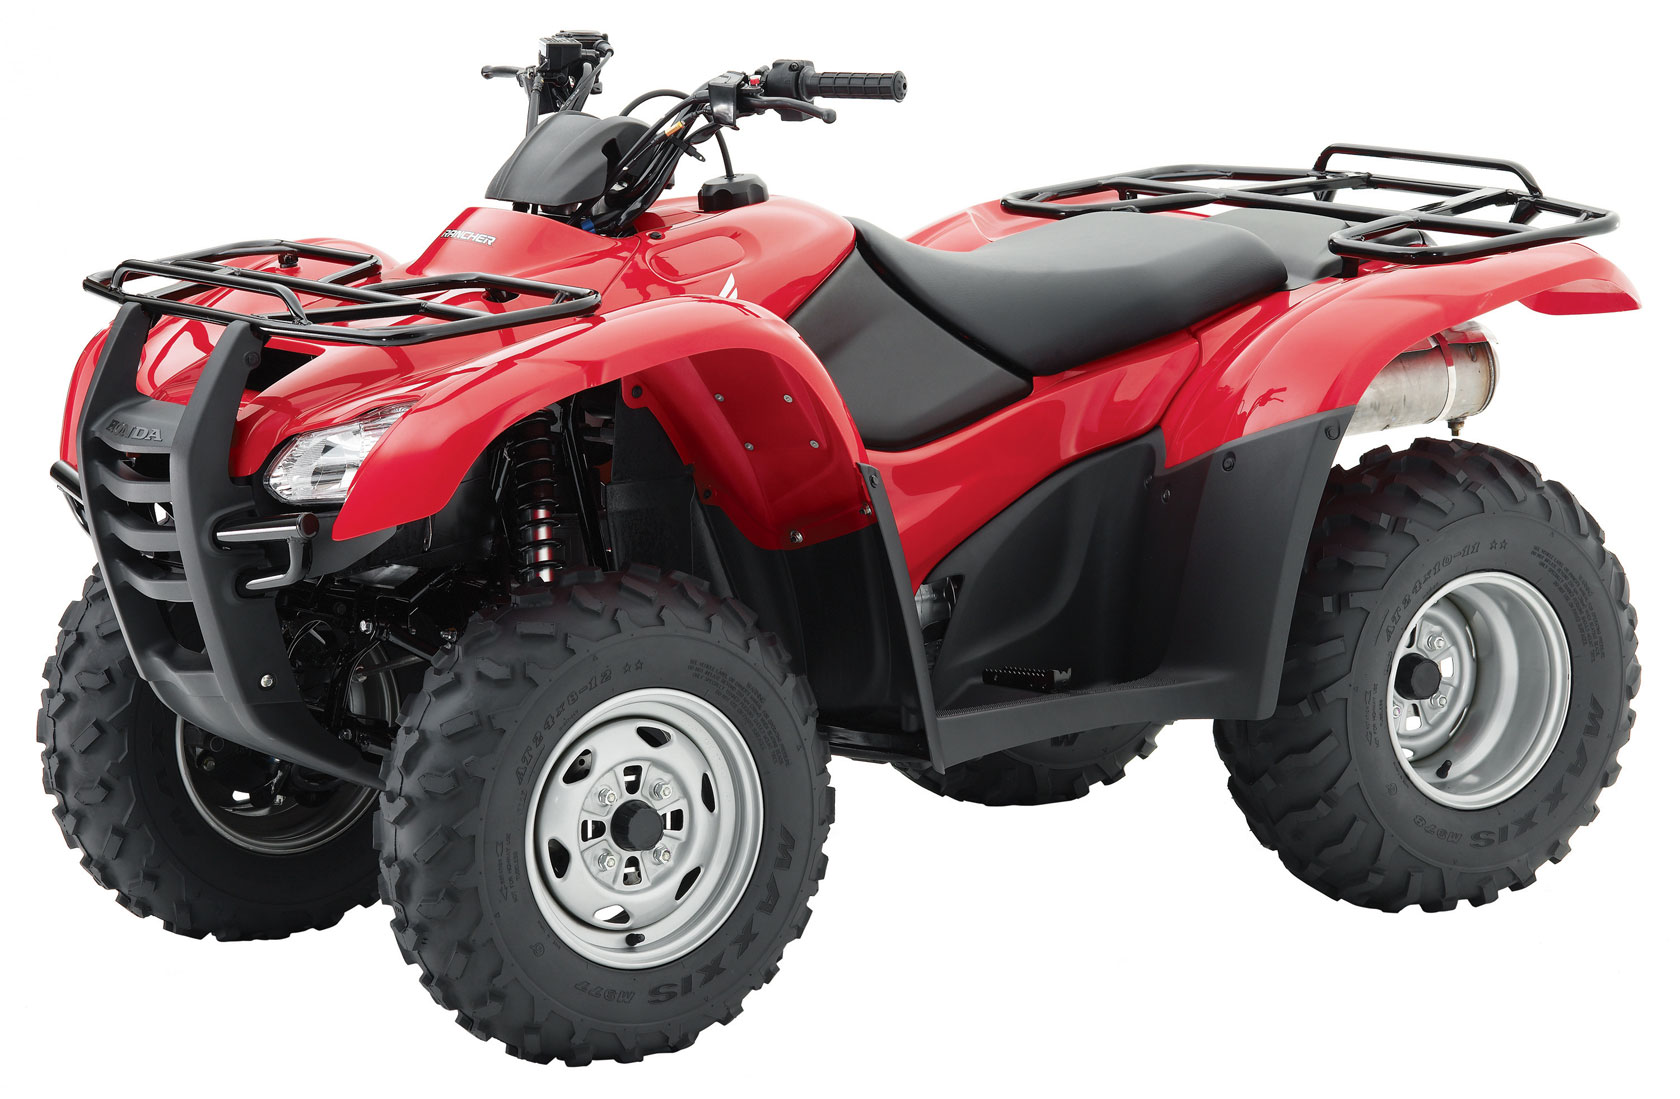 Honda Fourtrax Rancher Trx420tm Specs 2010 2011